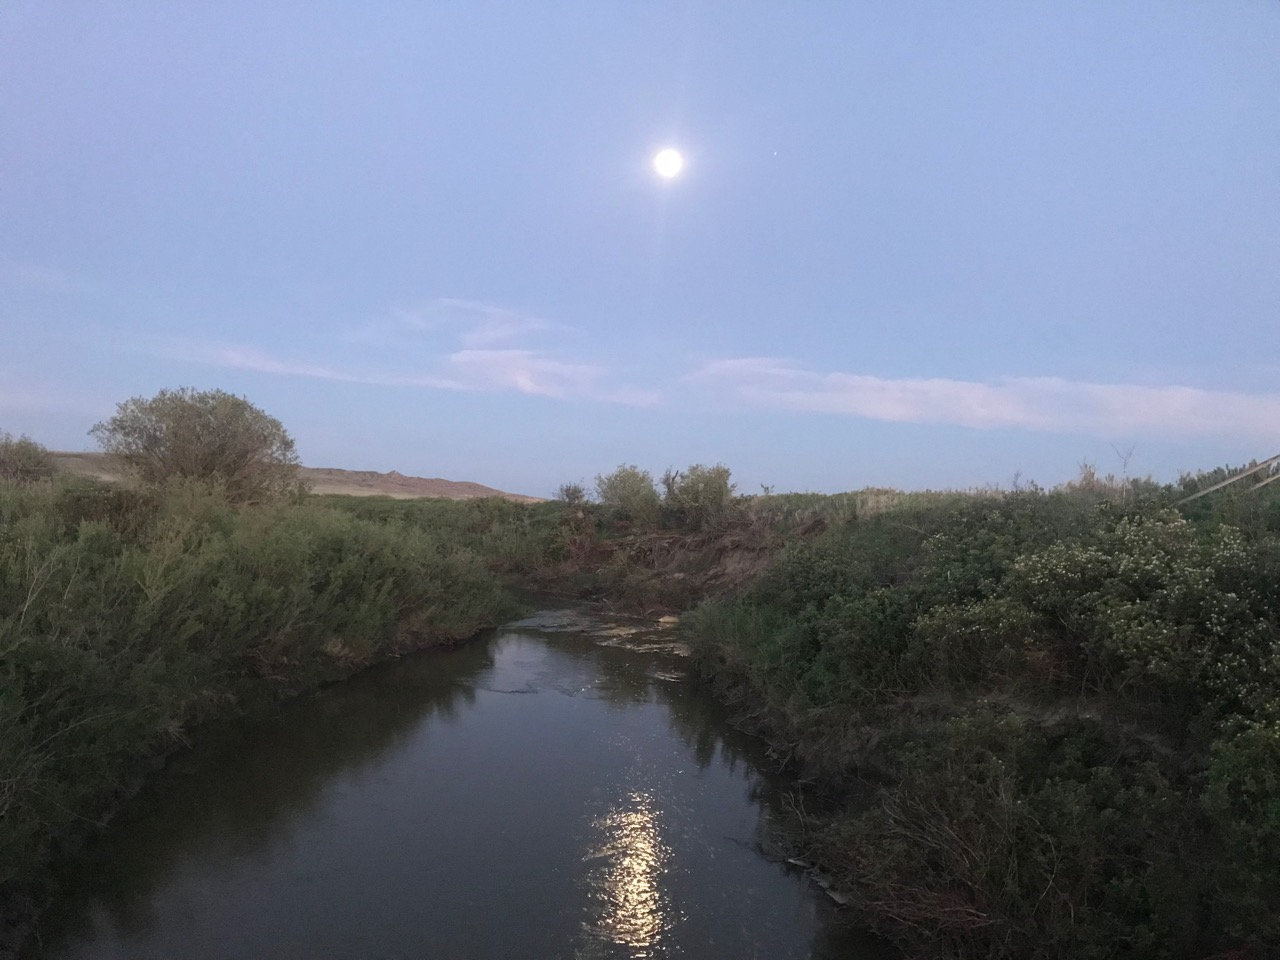 Moon and reflection.  Frenchman's Creek, Grasslands